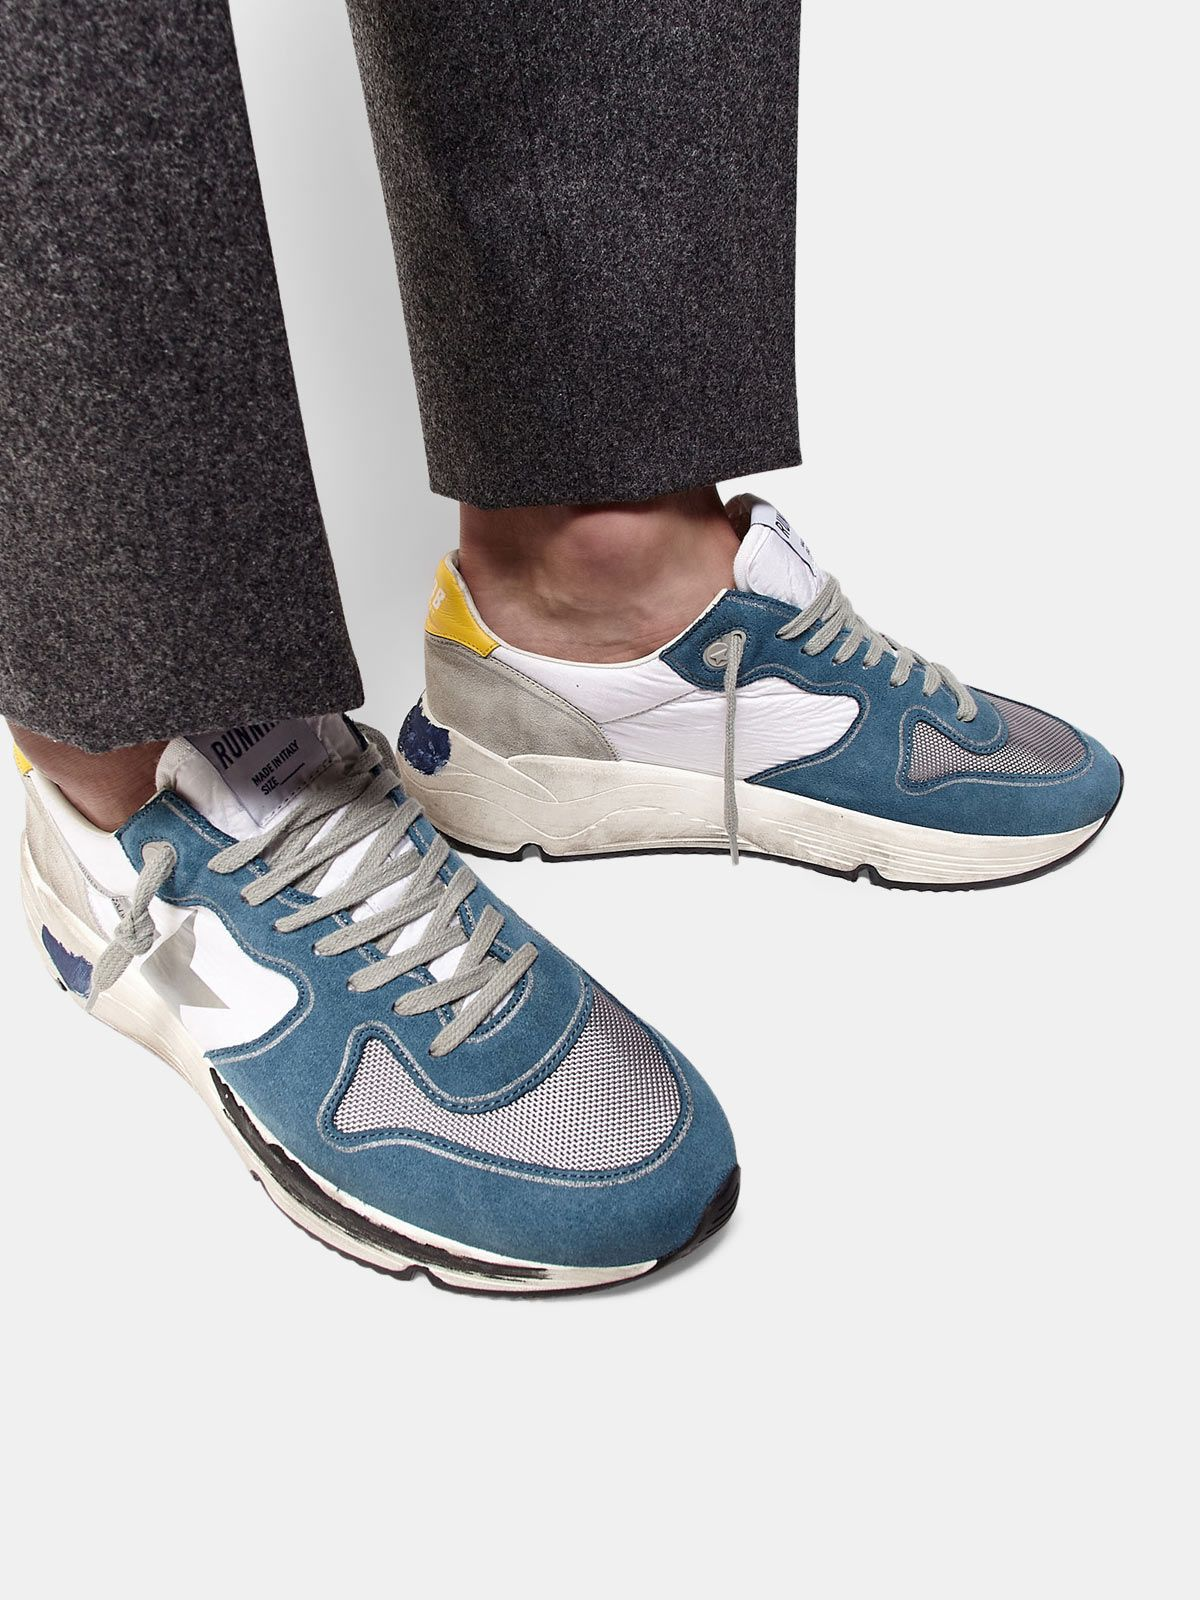 Golden Goose - Running Sole sneakers in light blue leather with silver star in